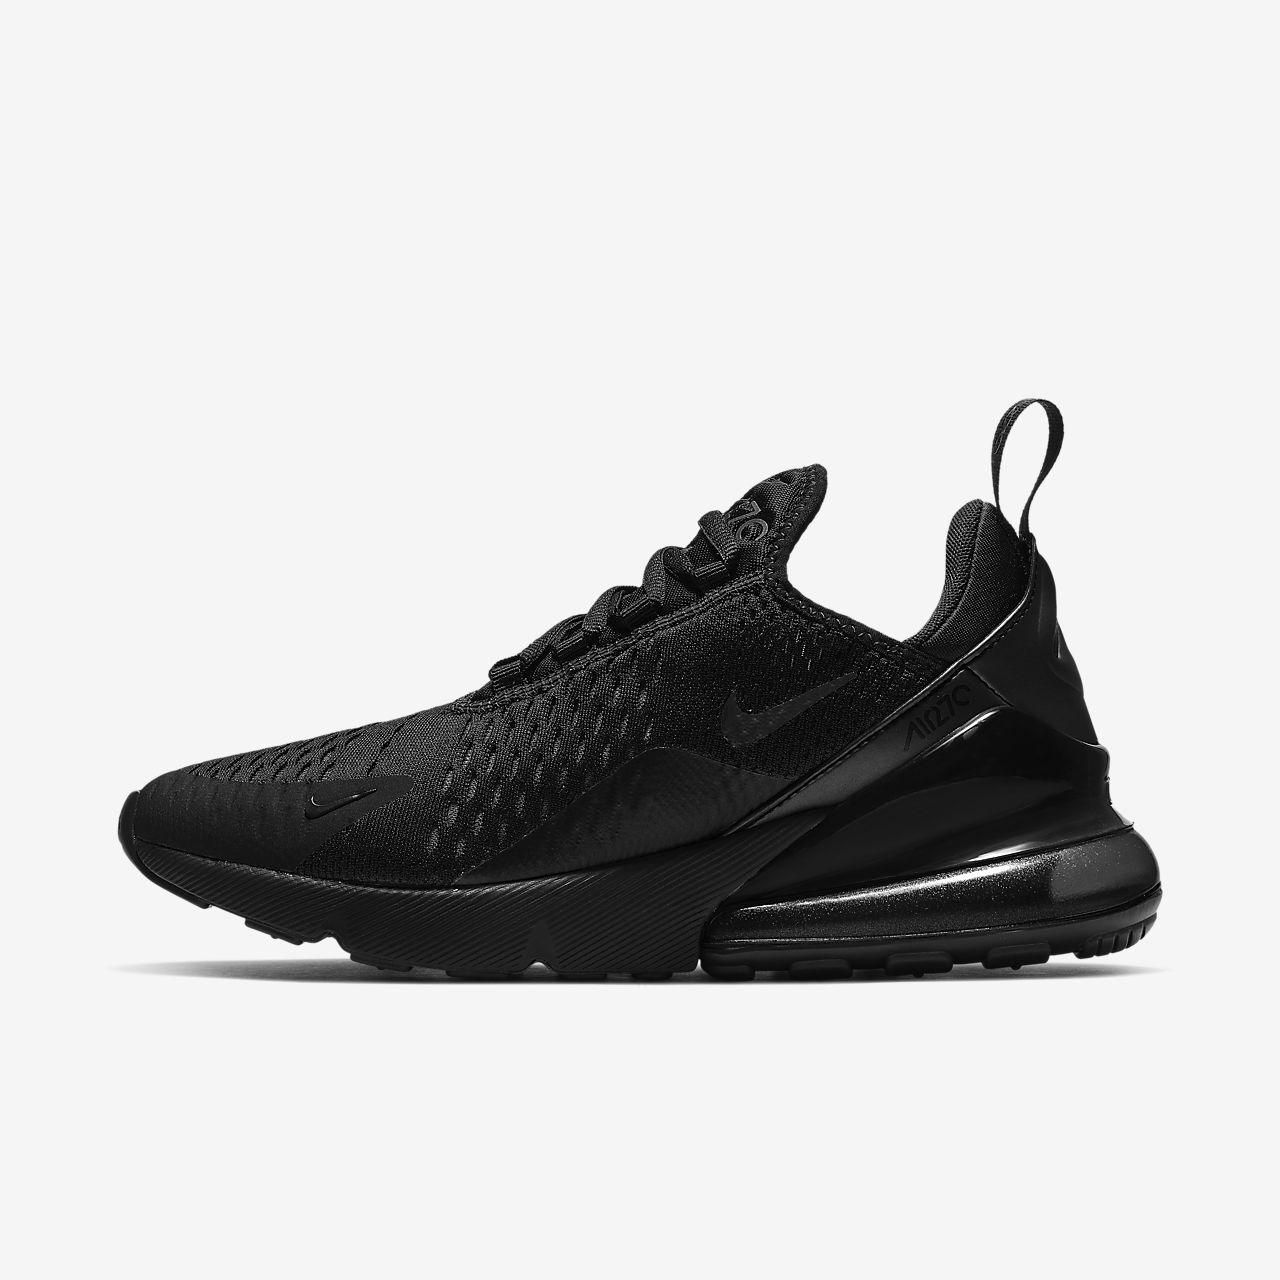 New Mens Nike Air Max BlackWhite Latest